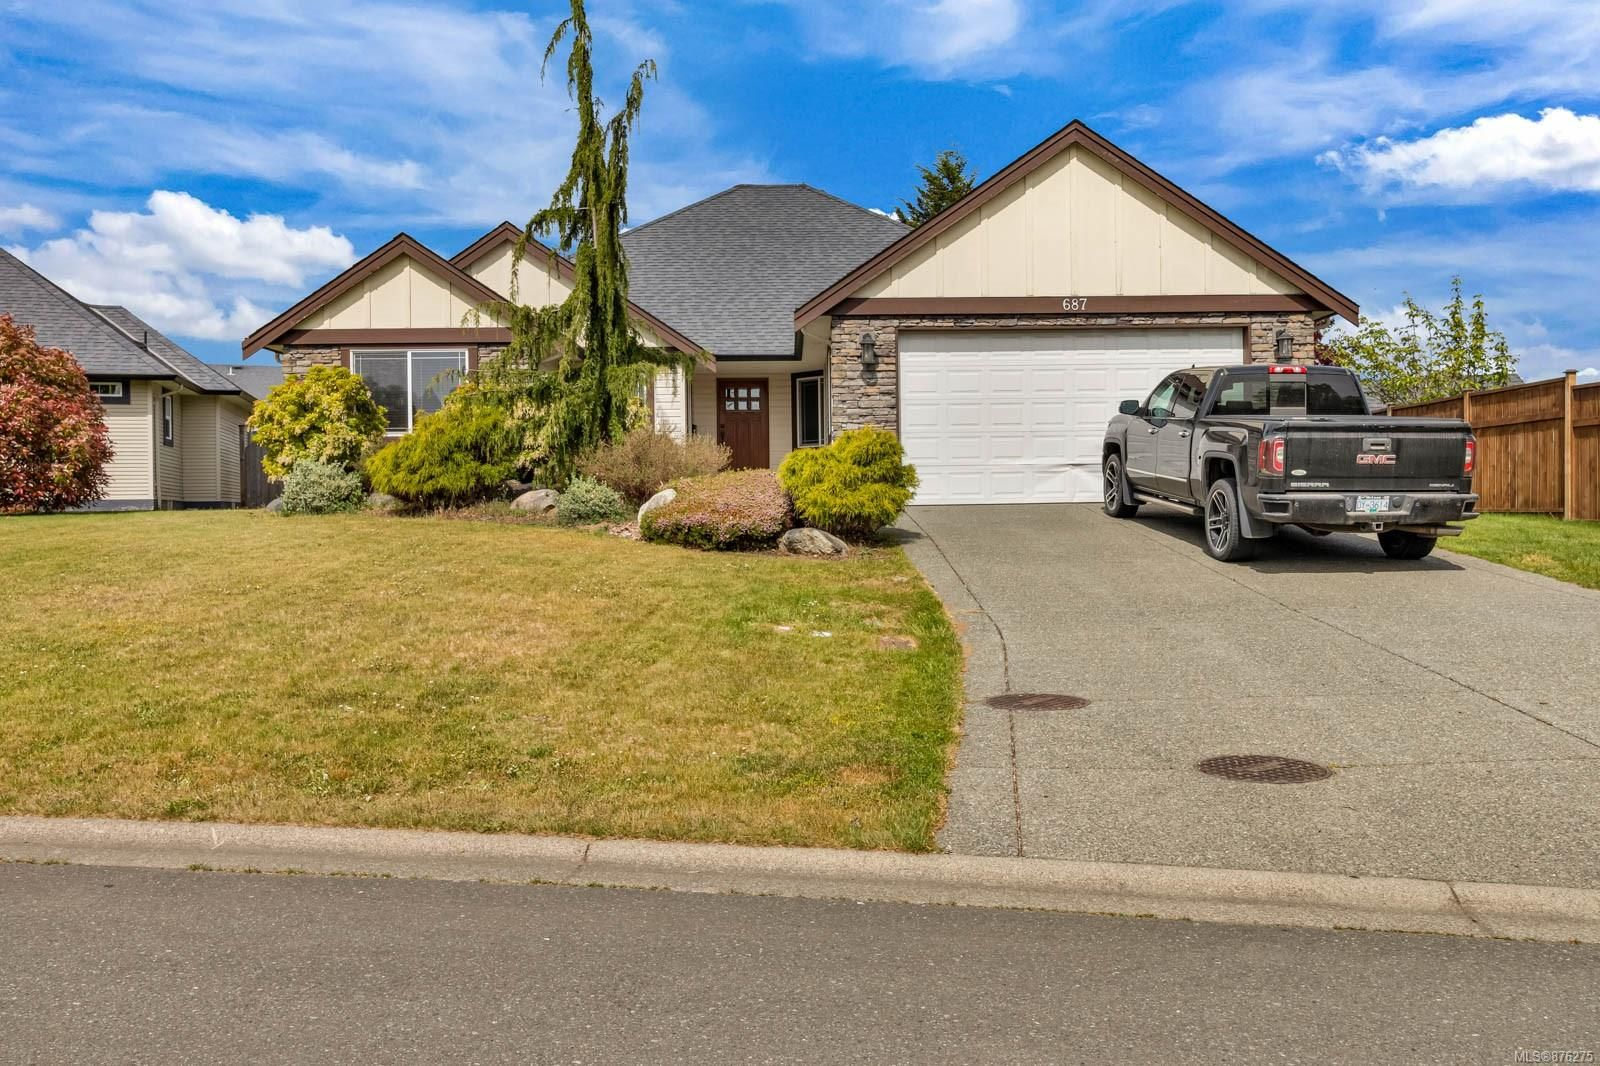 Main Photo: 687 Olympic Dr in : CV Comox (Town of) House for sale (Comox Valley)  : MLS®# 876275